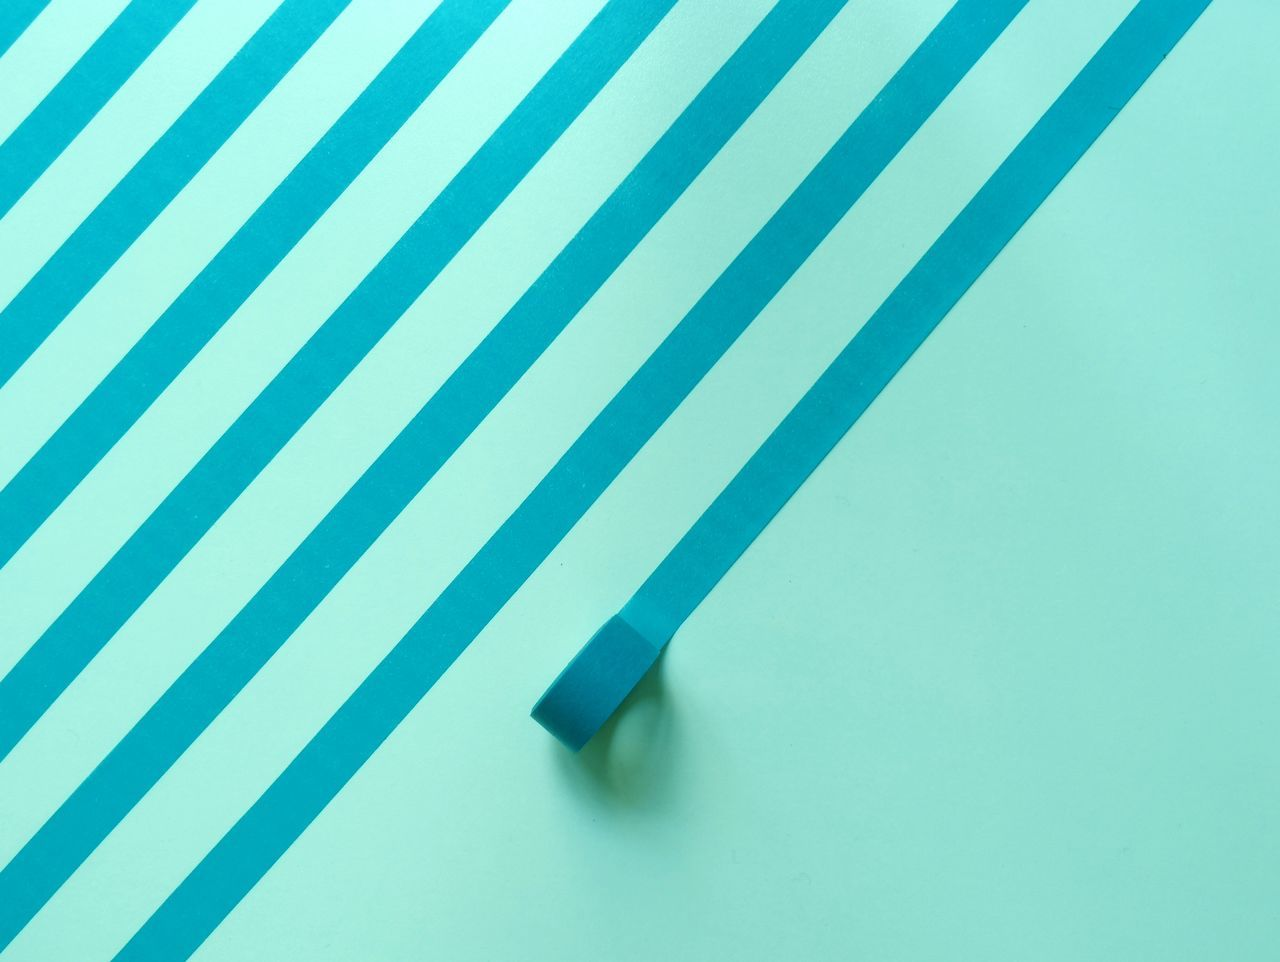 Striped made from adhesive tape on wall